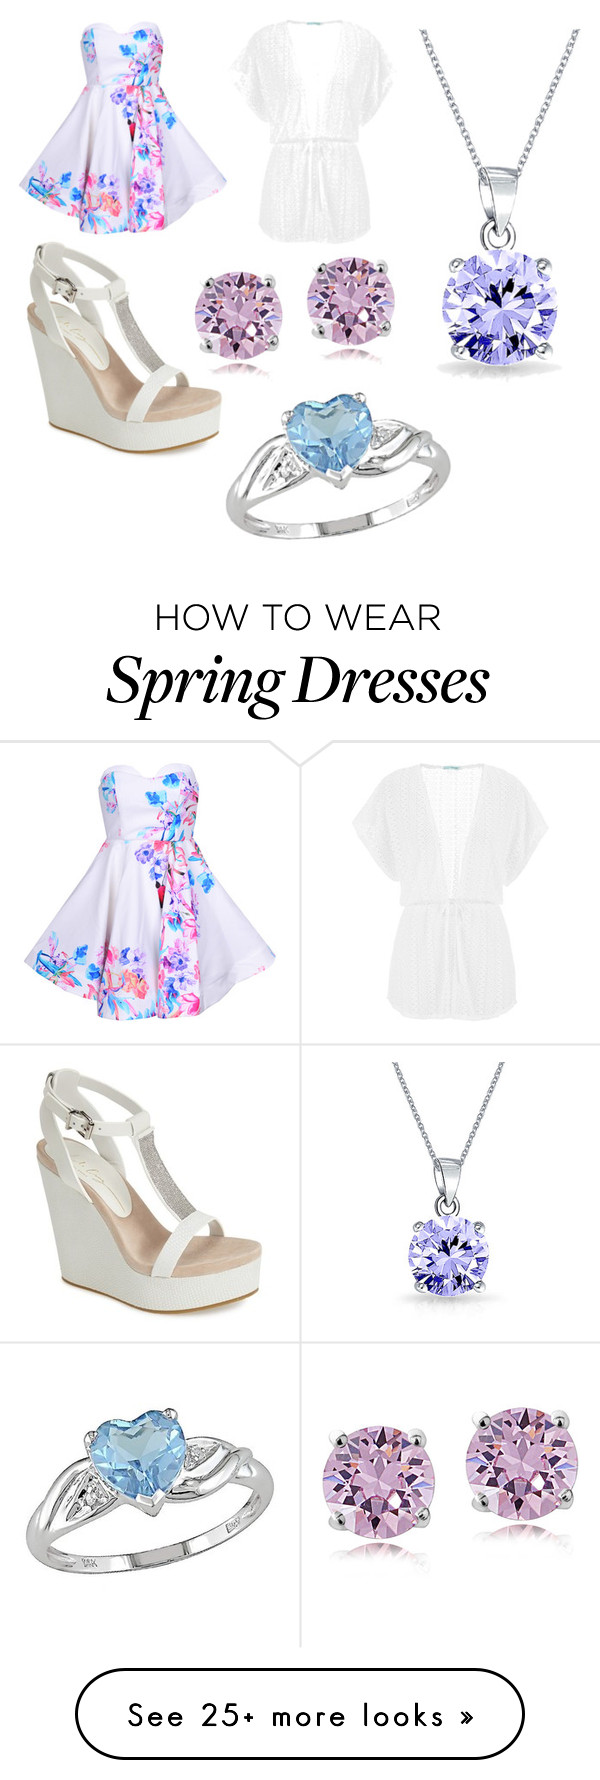 """""""Spring picture ☀️"""" by makia115 on Polyvore featuring moda, Lola Cruz, maurices, Bling Jewelry y Ice"""